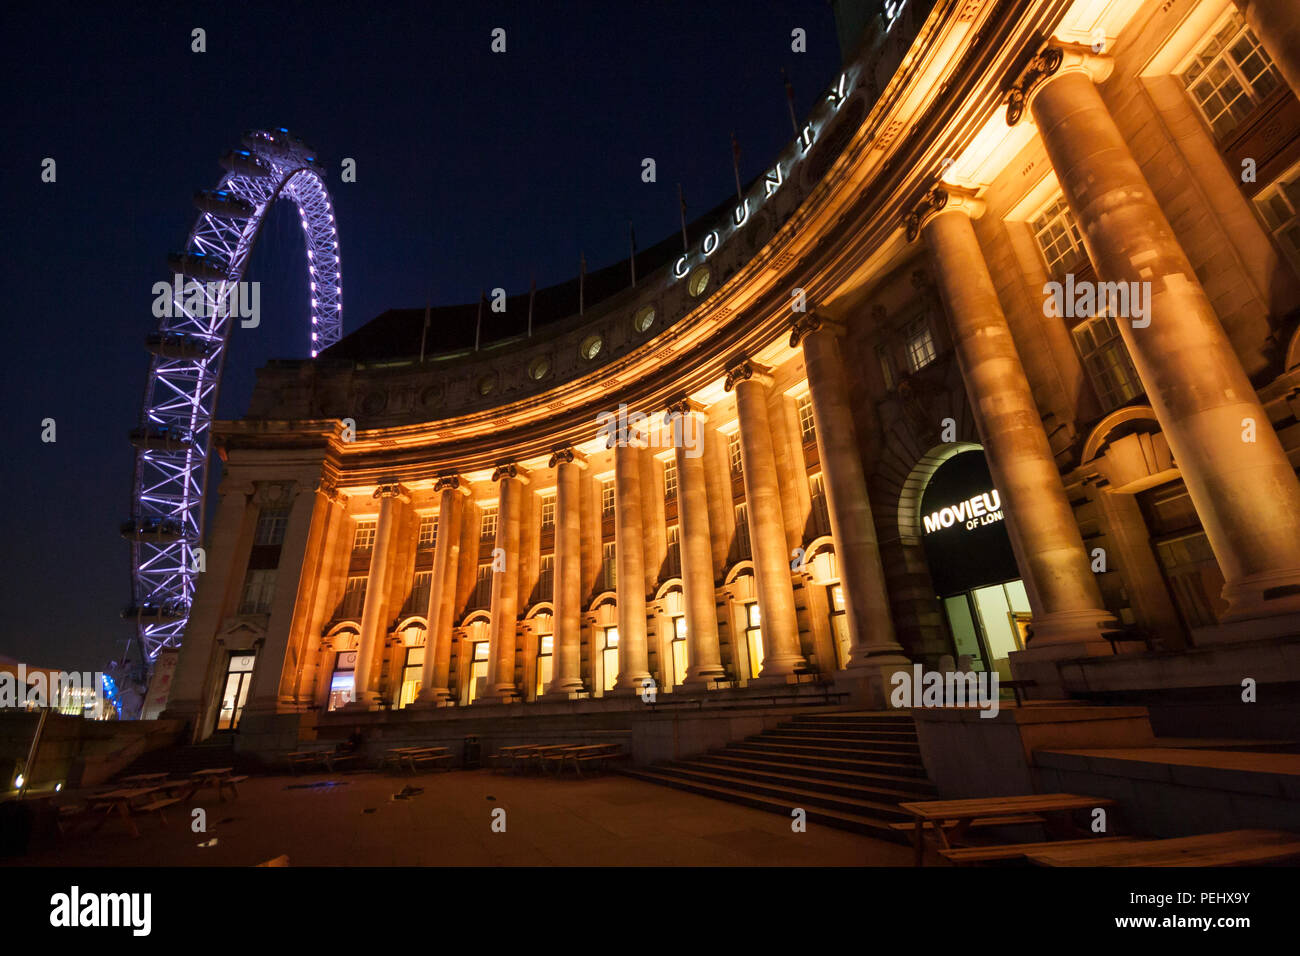 County Hall and London Eye at Night. - Stock Image